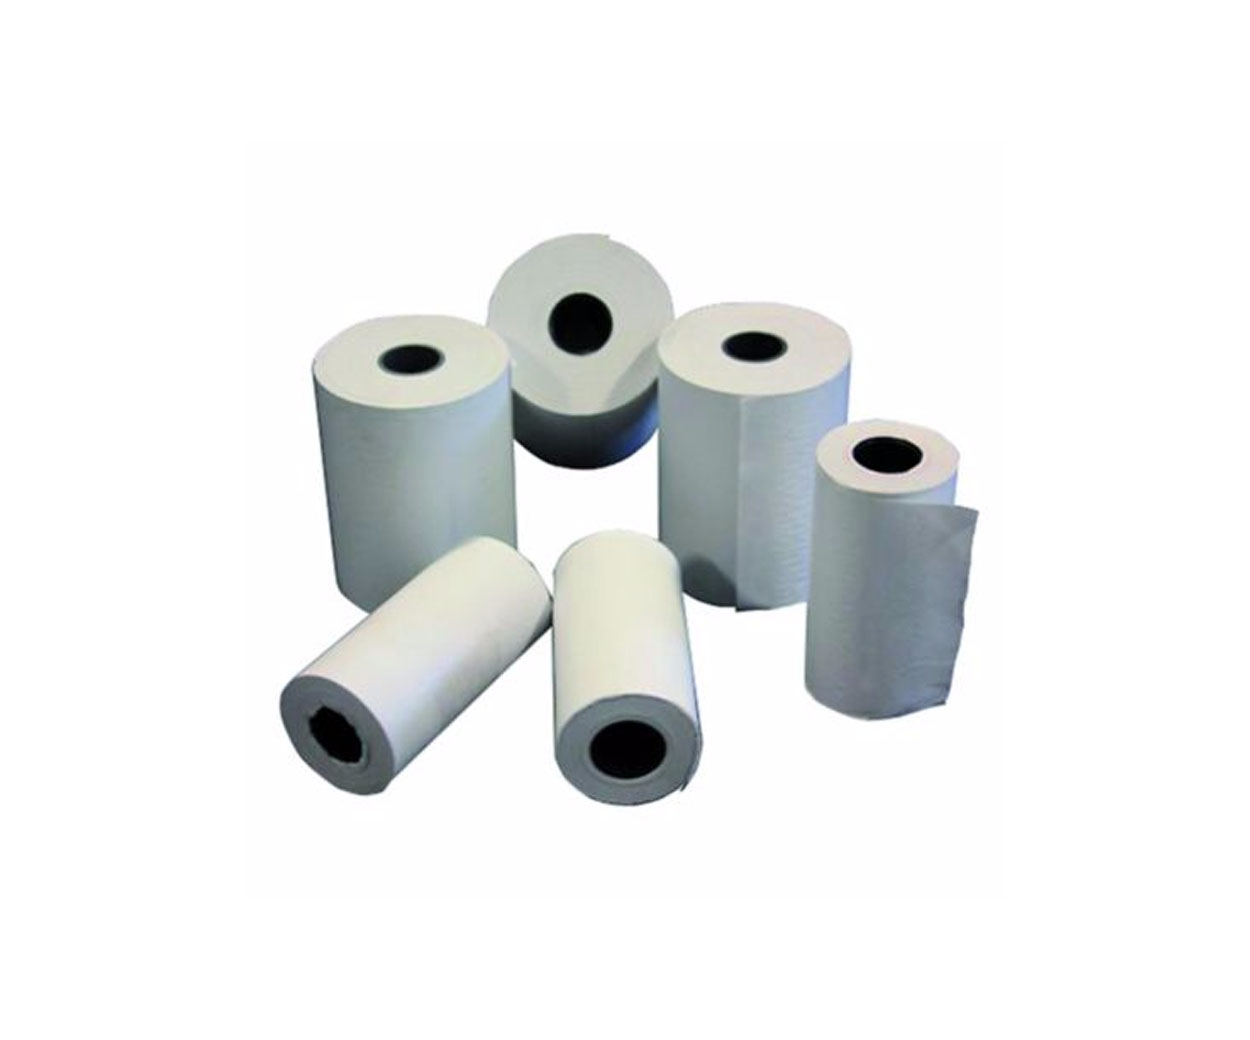 Stationery Clearance - Thermal Till Rolls 44 x 70 x 17.5mm - Box of 20